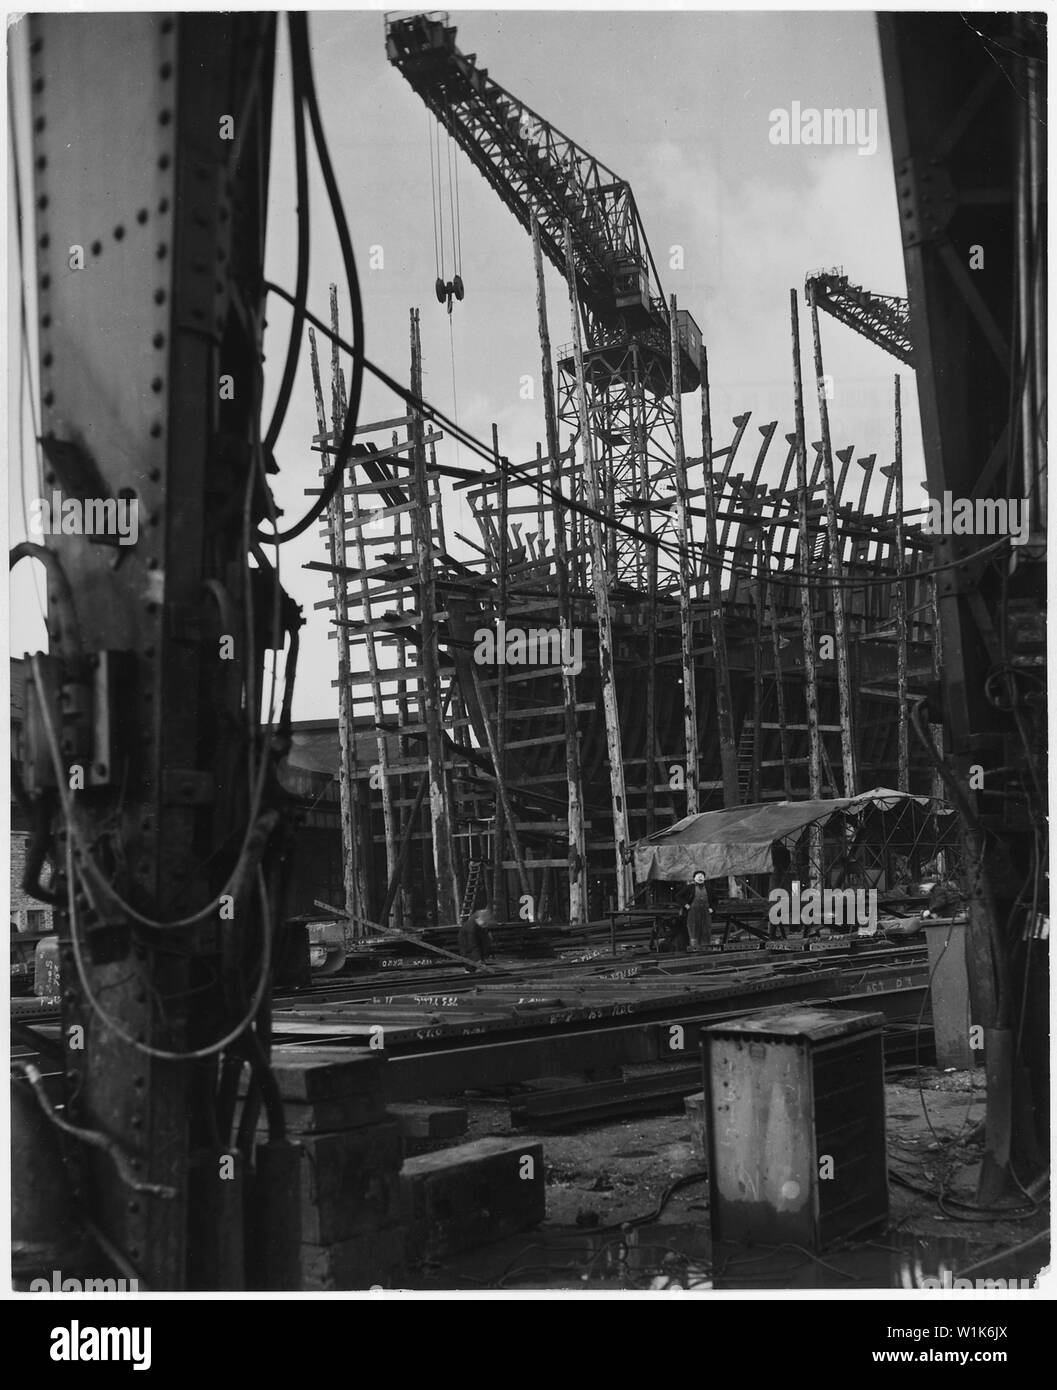 United Kingdom. Clydebank, Scotland. Still a shapless frame work of steel scaffolding, this 28,000 ton oil tanker, building in the Clydebank yard of Fairfield Shipbuilding and Engeering Comapny, is due for launching within two months (April-May) - and Clydebank never misses the deadline; Scope and content:  United Kingdom. Clydebank, Scotland. Still a shapless frame work of steel scaffolding, this 28,000 ton oil tanker, building in the Clydebank yard of Fairfield Shipbuilding and Engeering Comapny, is due for launching within two months (April-May) - and Clydebank never misses the deadline. Br Stock Photo